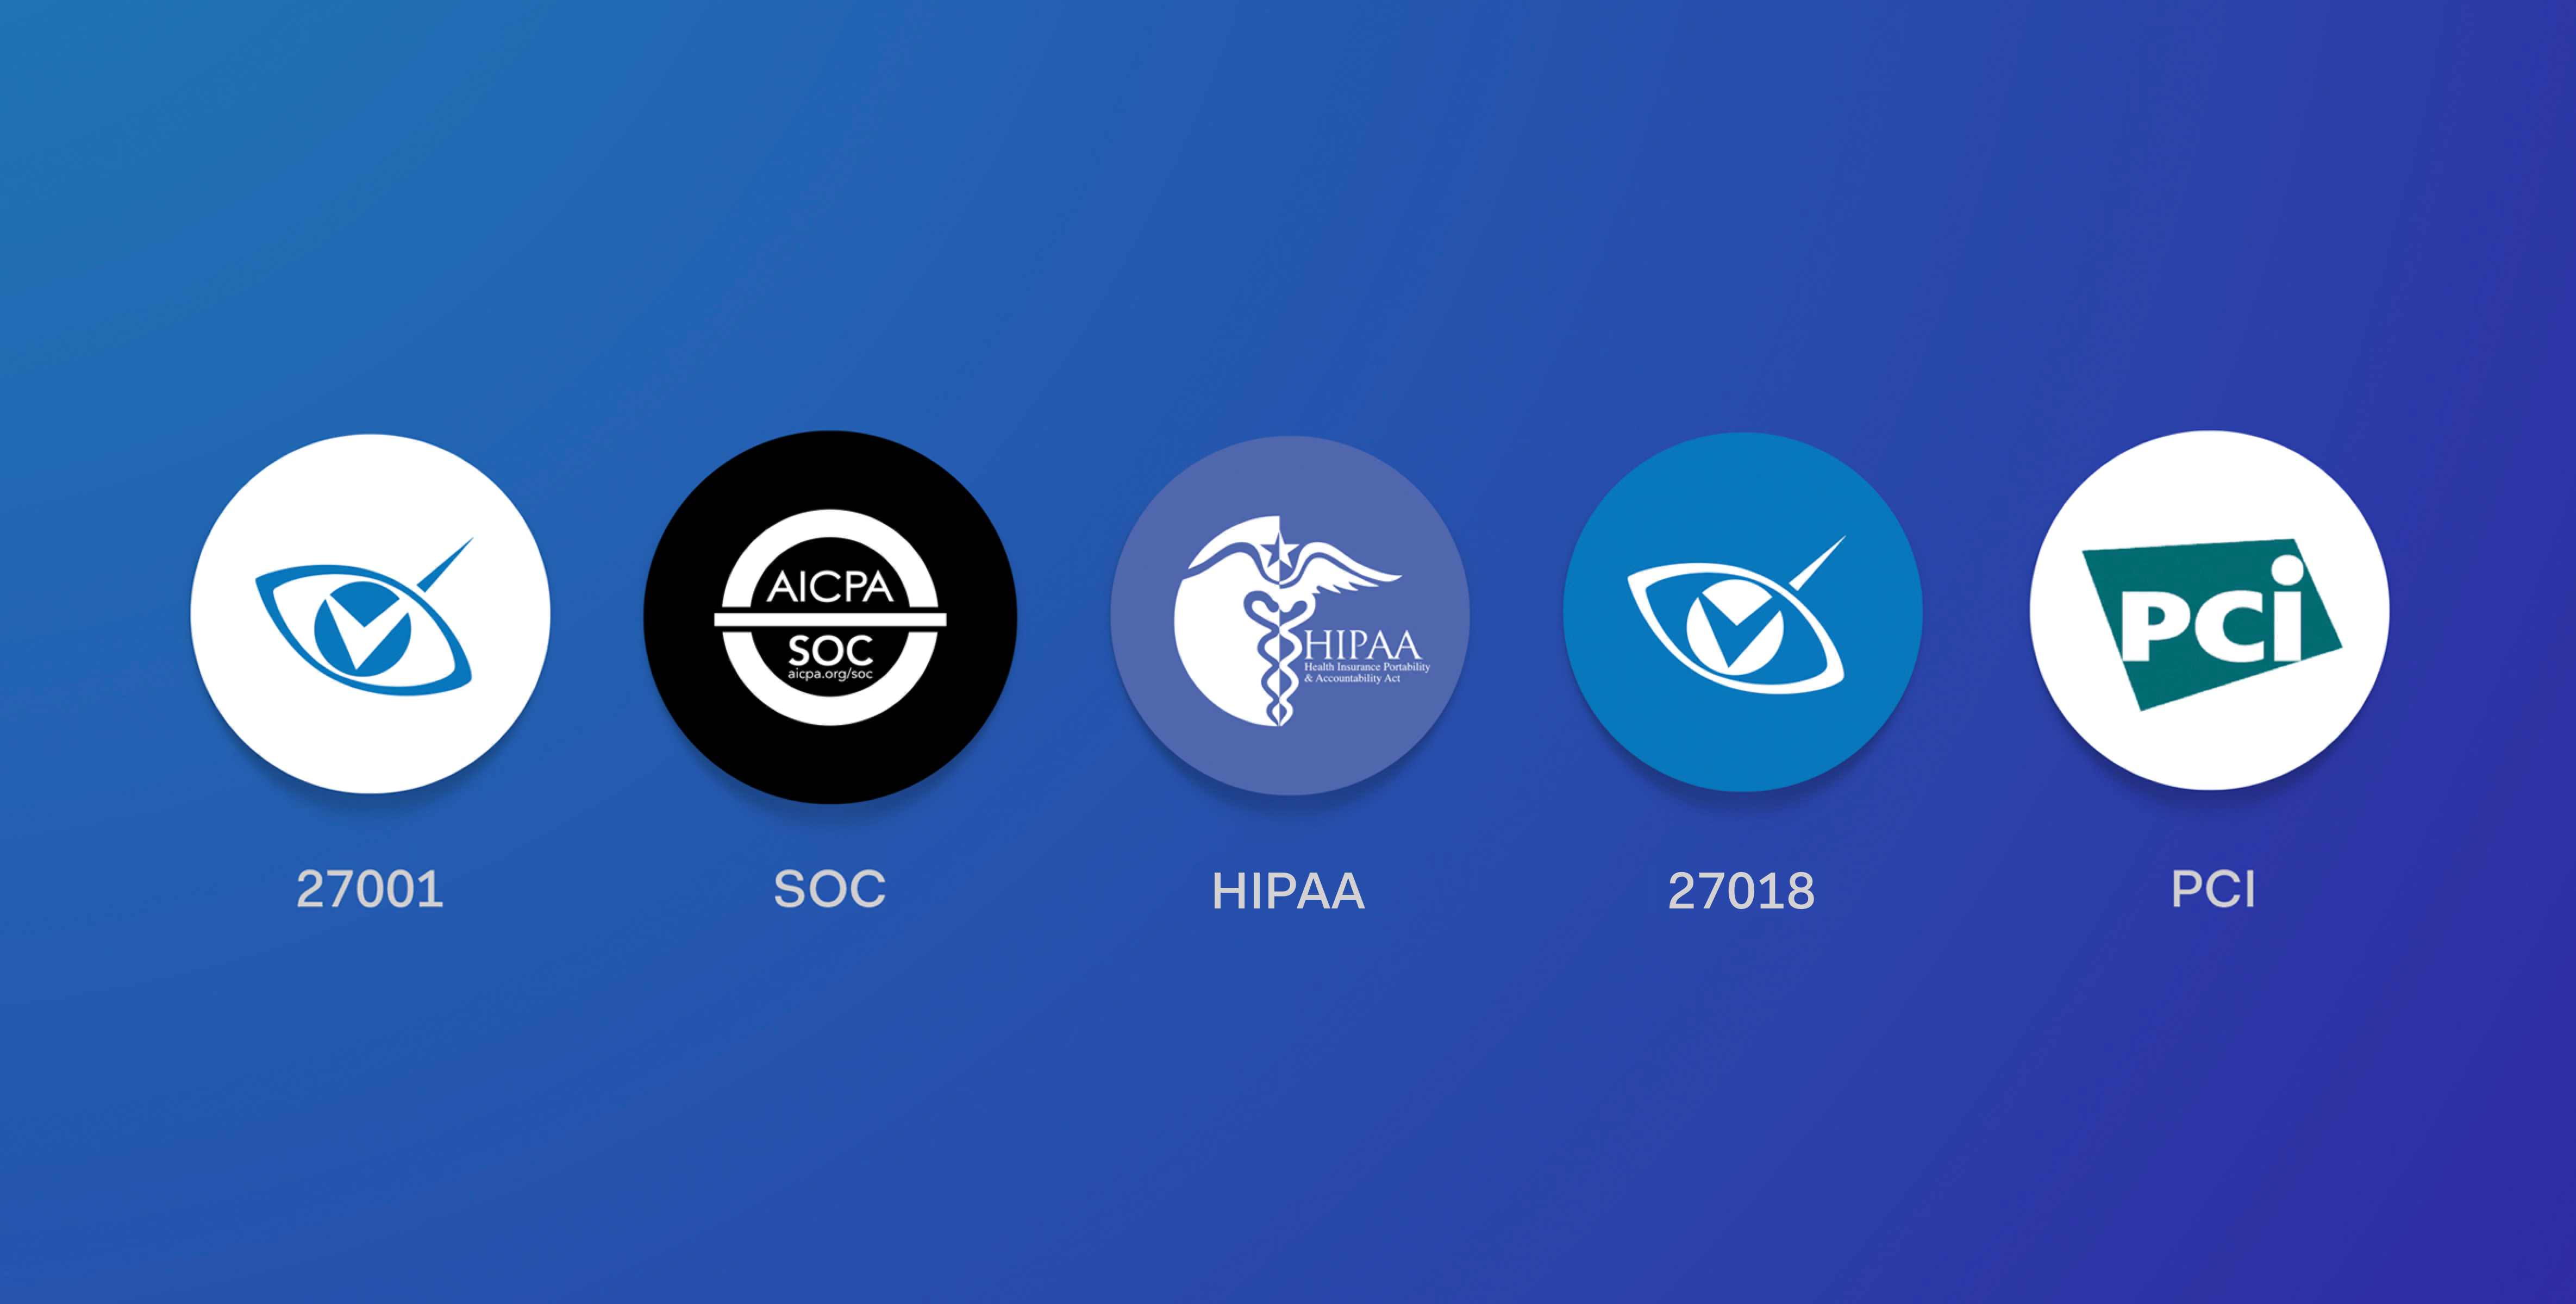 Auth0 achieve important certifications, such as ISO 27001 and 270218, SOC 2 Type 2, HIPAA and PCI.